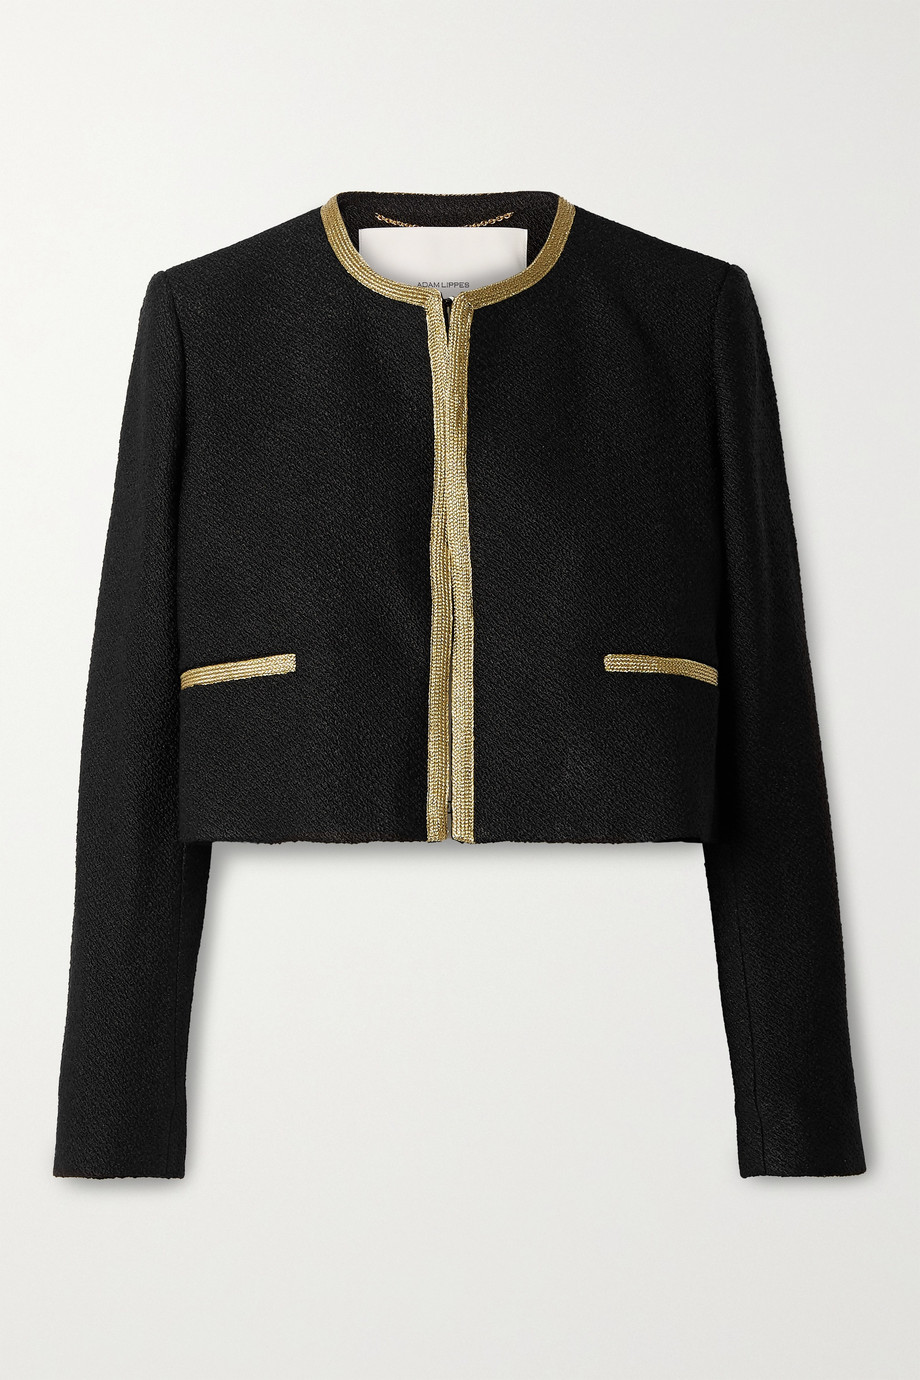 Adam Lippes Cropped metallic-trimmed bouclé jacket